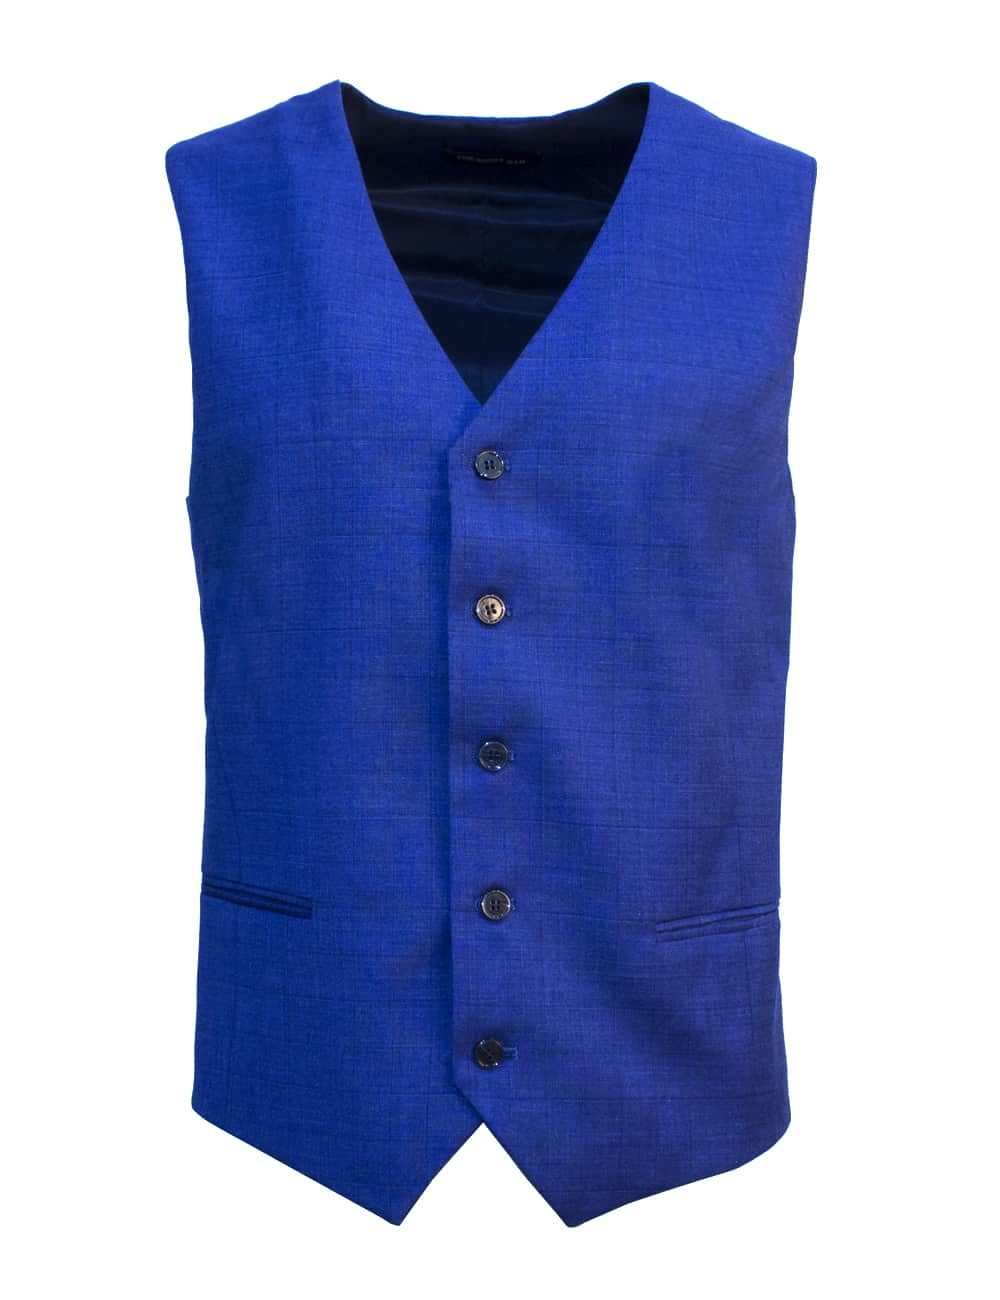 Tailored Fit Blue Checks Single Breasted Vest V1V4.2